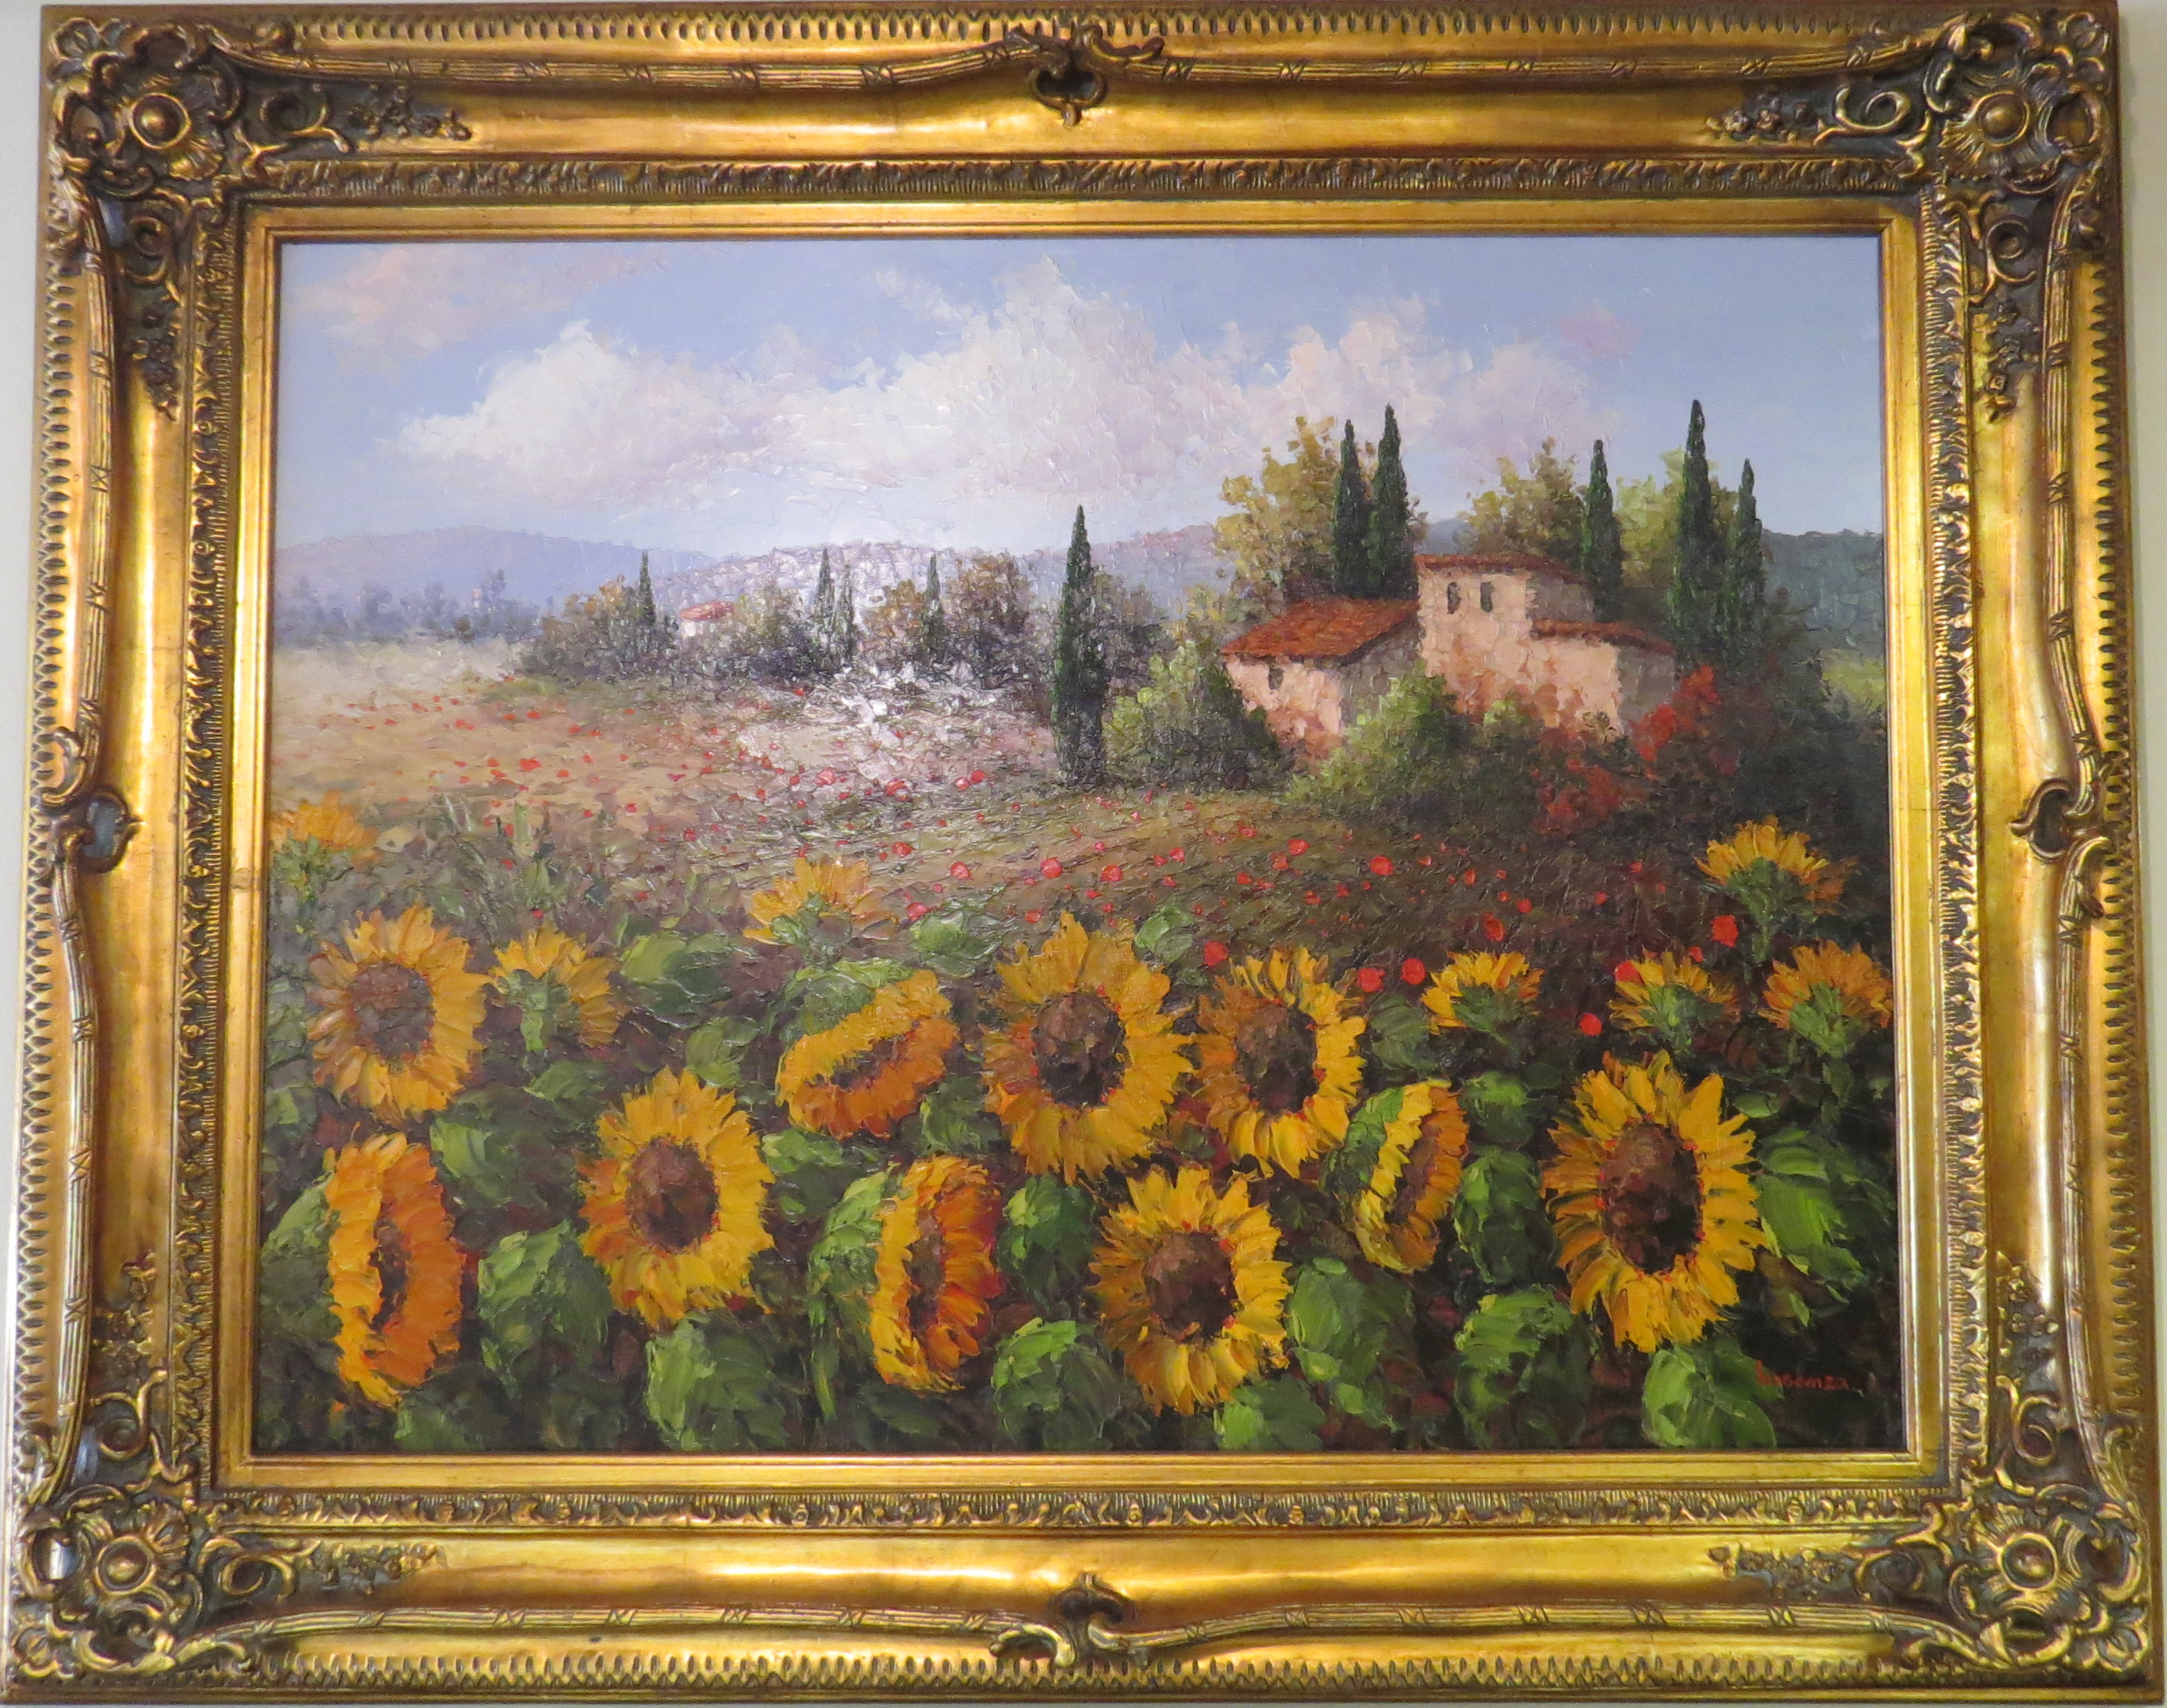 Oil on Canvas of a French Landscape, signed by Eva Hosanza